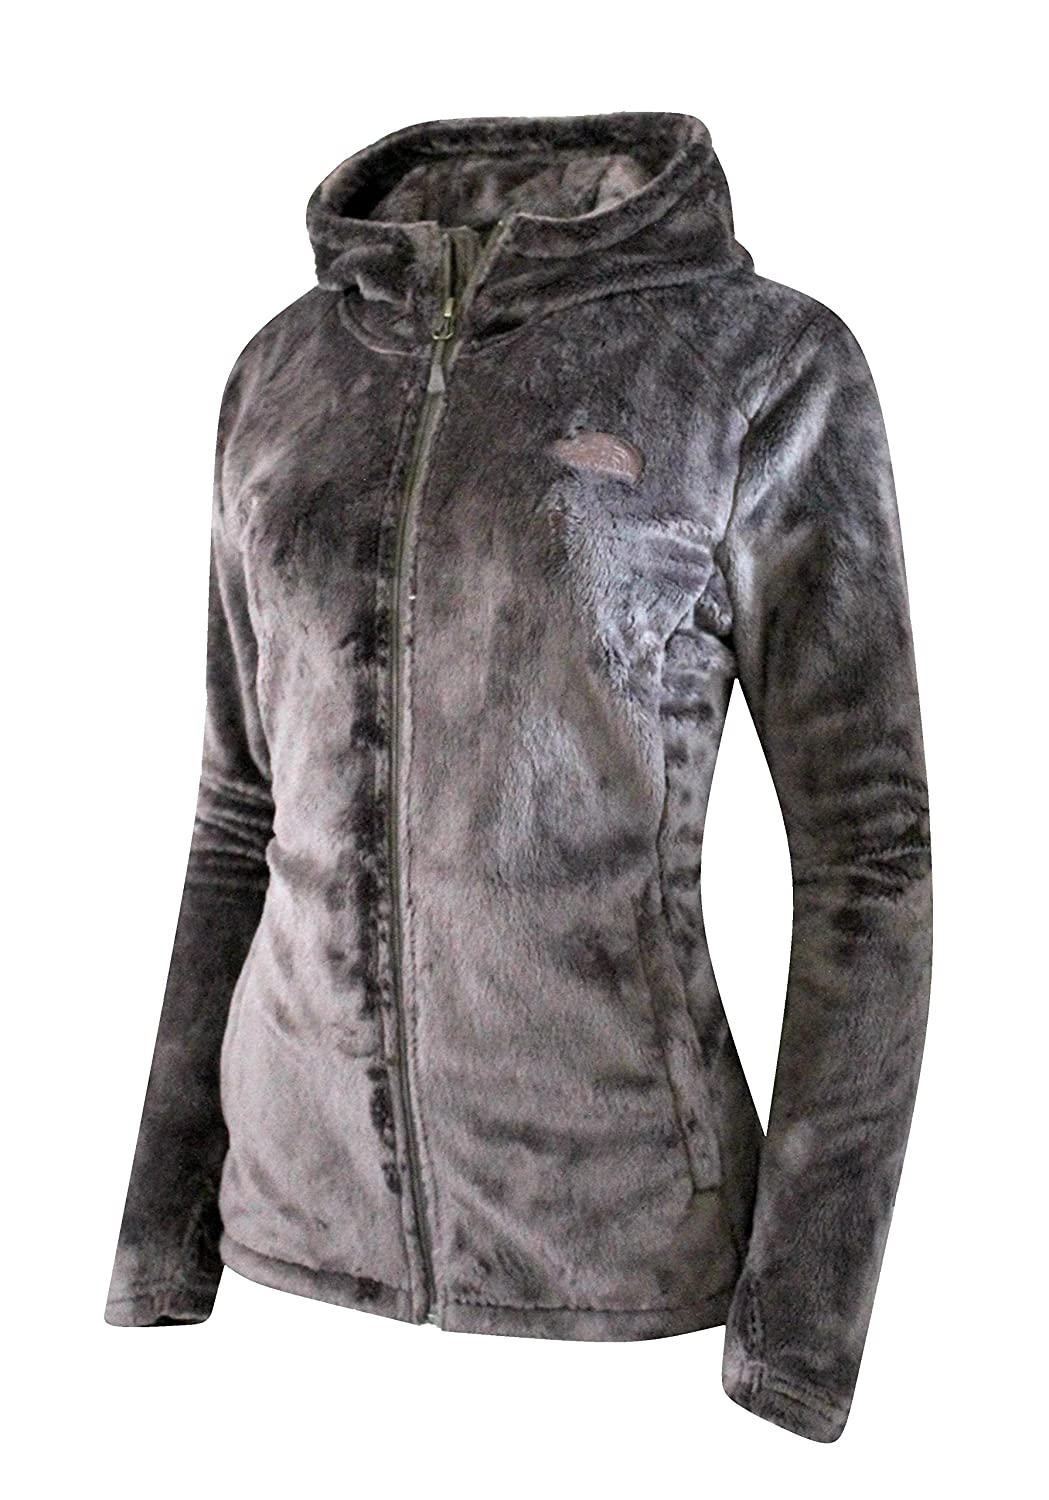 8ed58f4bd Amazon.com: The North Face Women's Osito Hoodie Full Zip Jacket (M ...